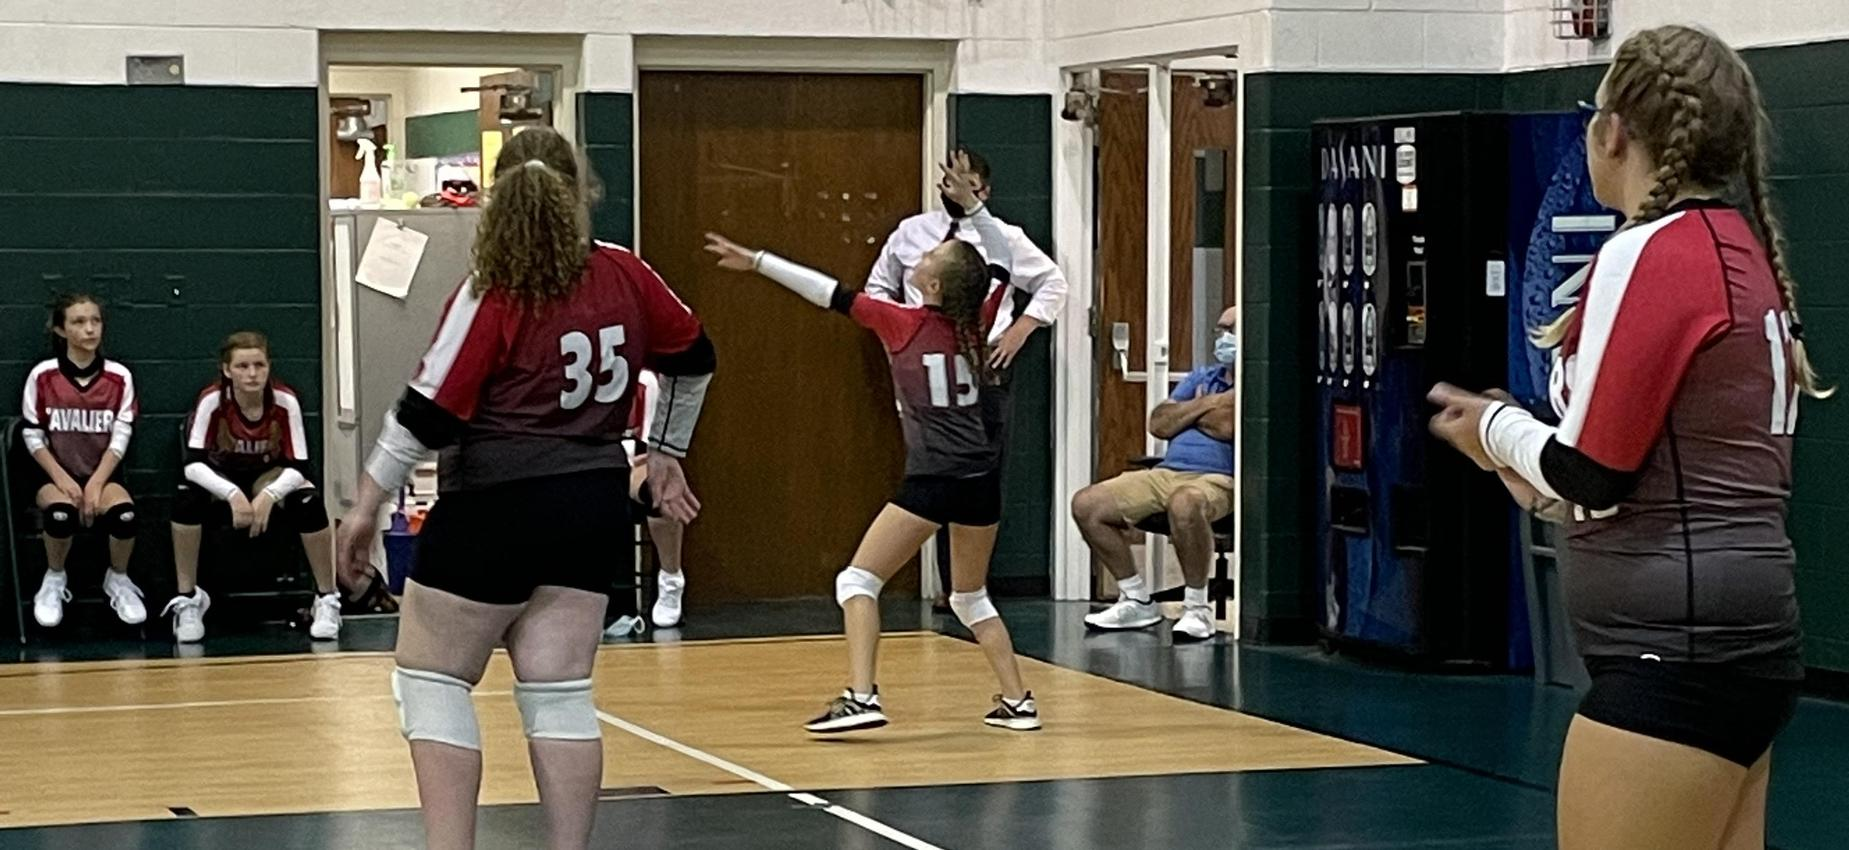 Volleyball players play in a gym.